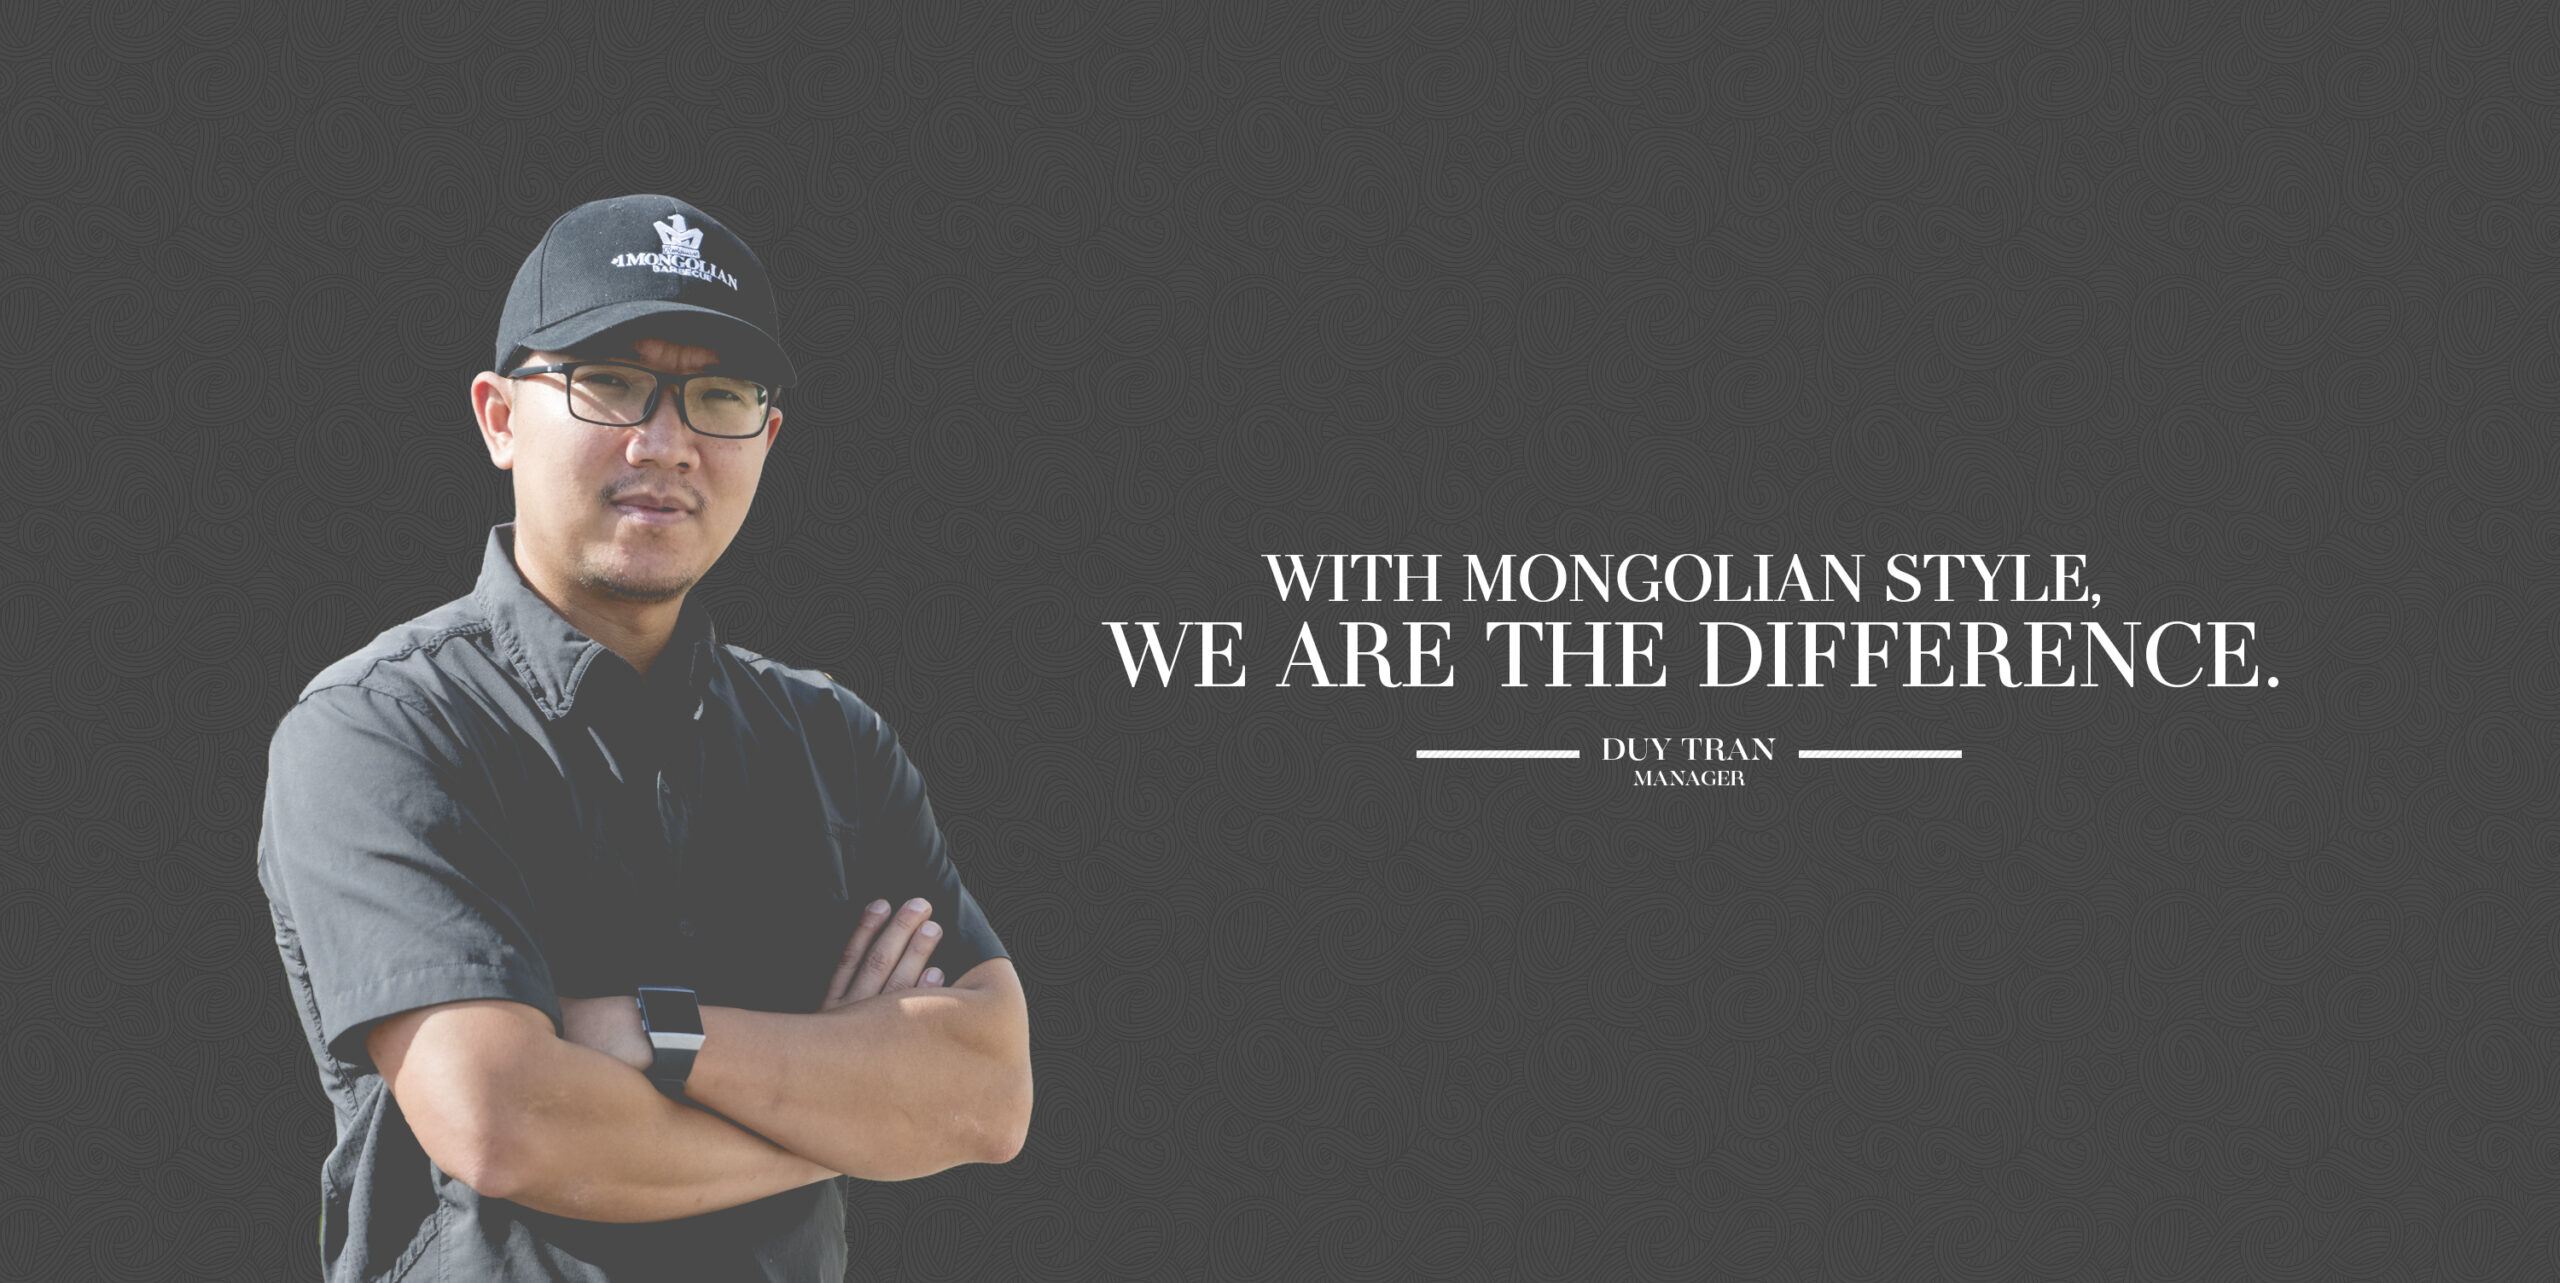 #1 MONGOLIAN BBQ _ WE ARE DIFFERENT